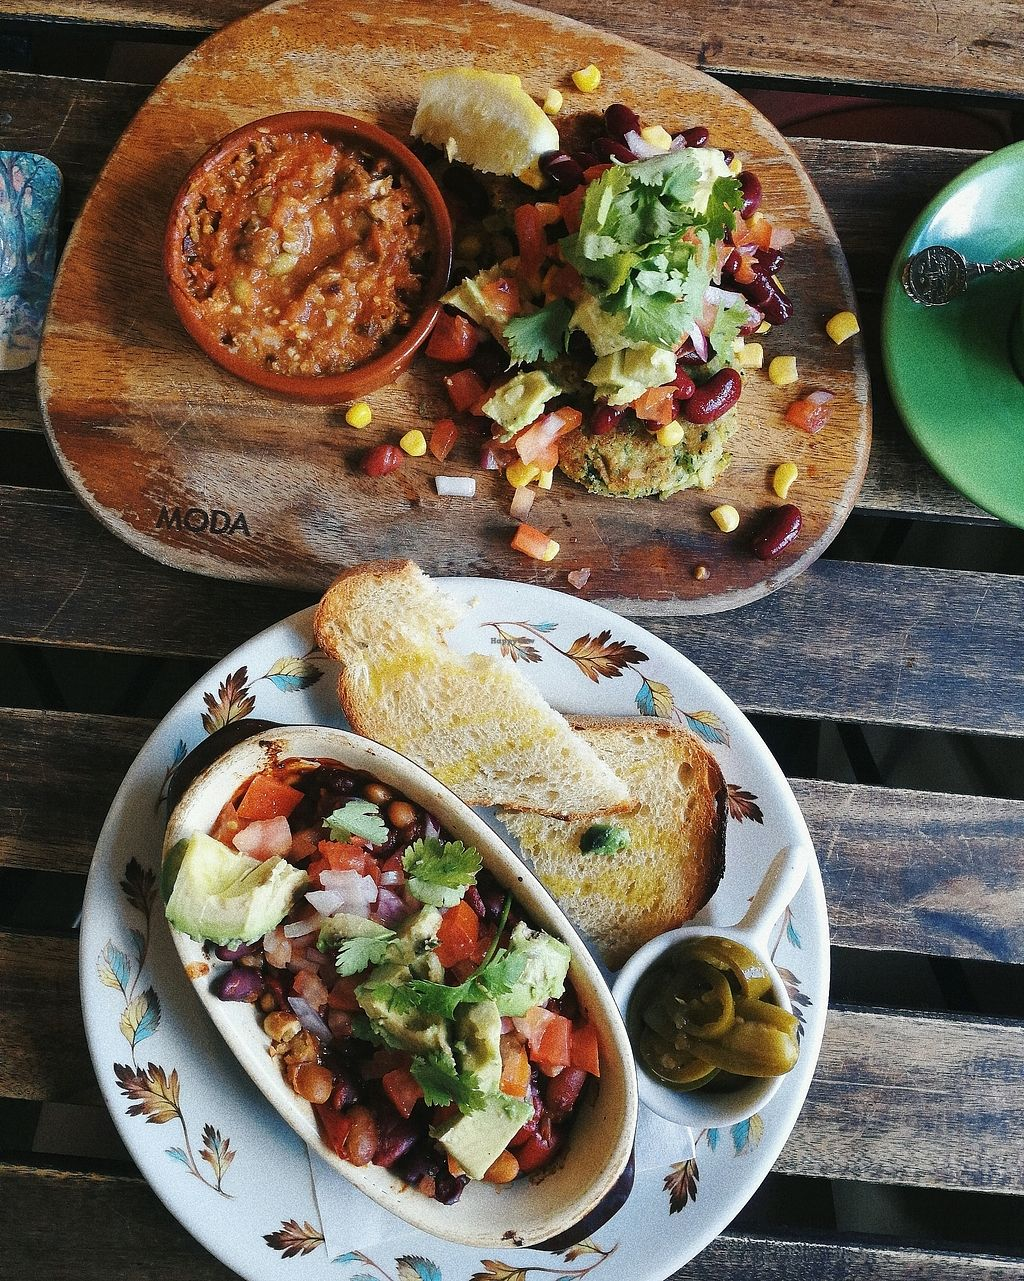 """Photo of Grace  by <a href=""""/members/profile/SigourneyPatterson"""">SigourneyPatterson</a> <br/>Top: Zucchini Fritters. Bottom: Mexican baked beans <br/> January 3, 2018  - <a href='/contact/abuse/image/75184/342394'>Report</a>"""